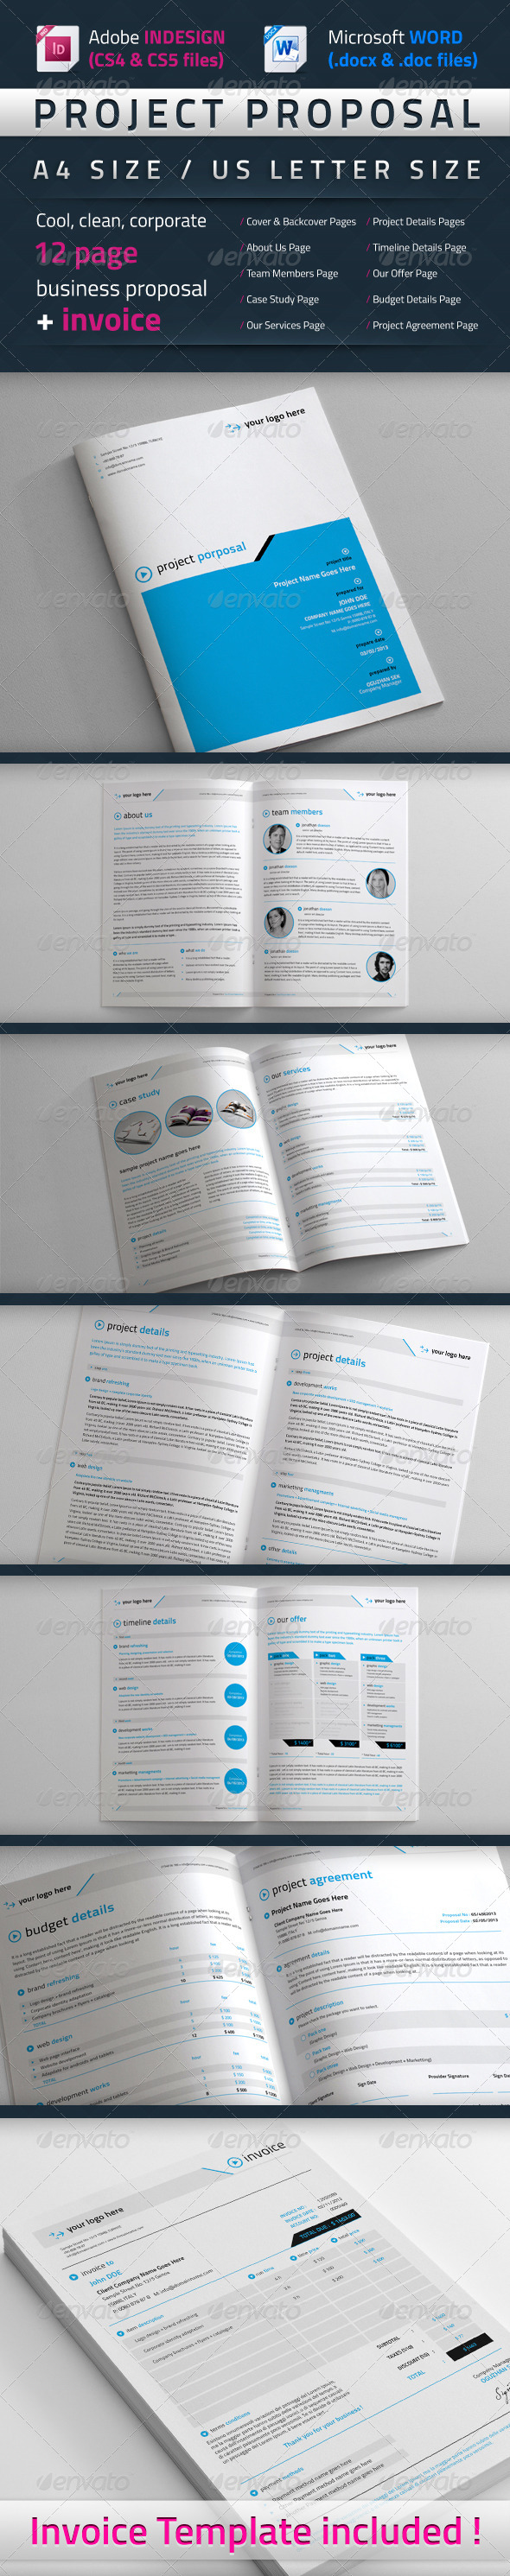 Project Proposal Template Updated  Project Proposal Proposal